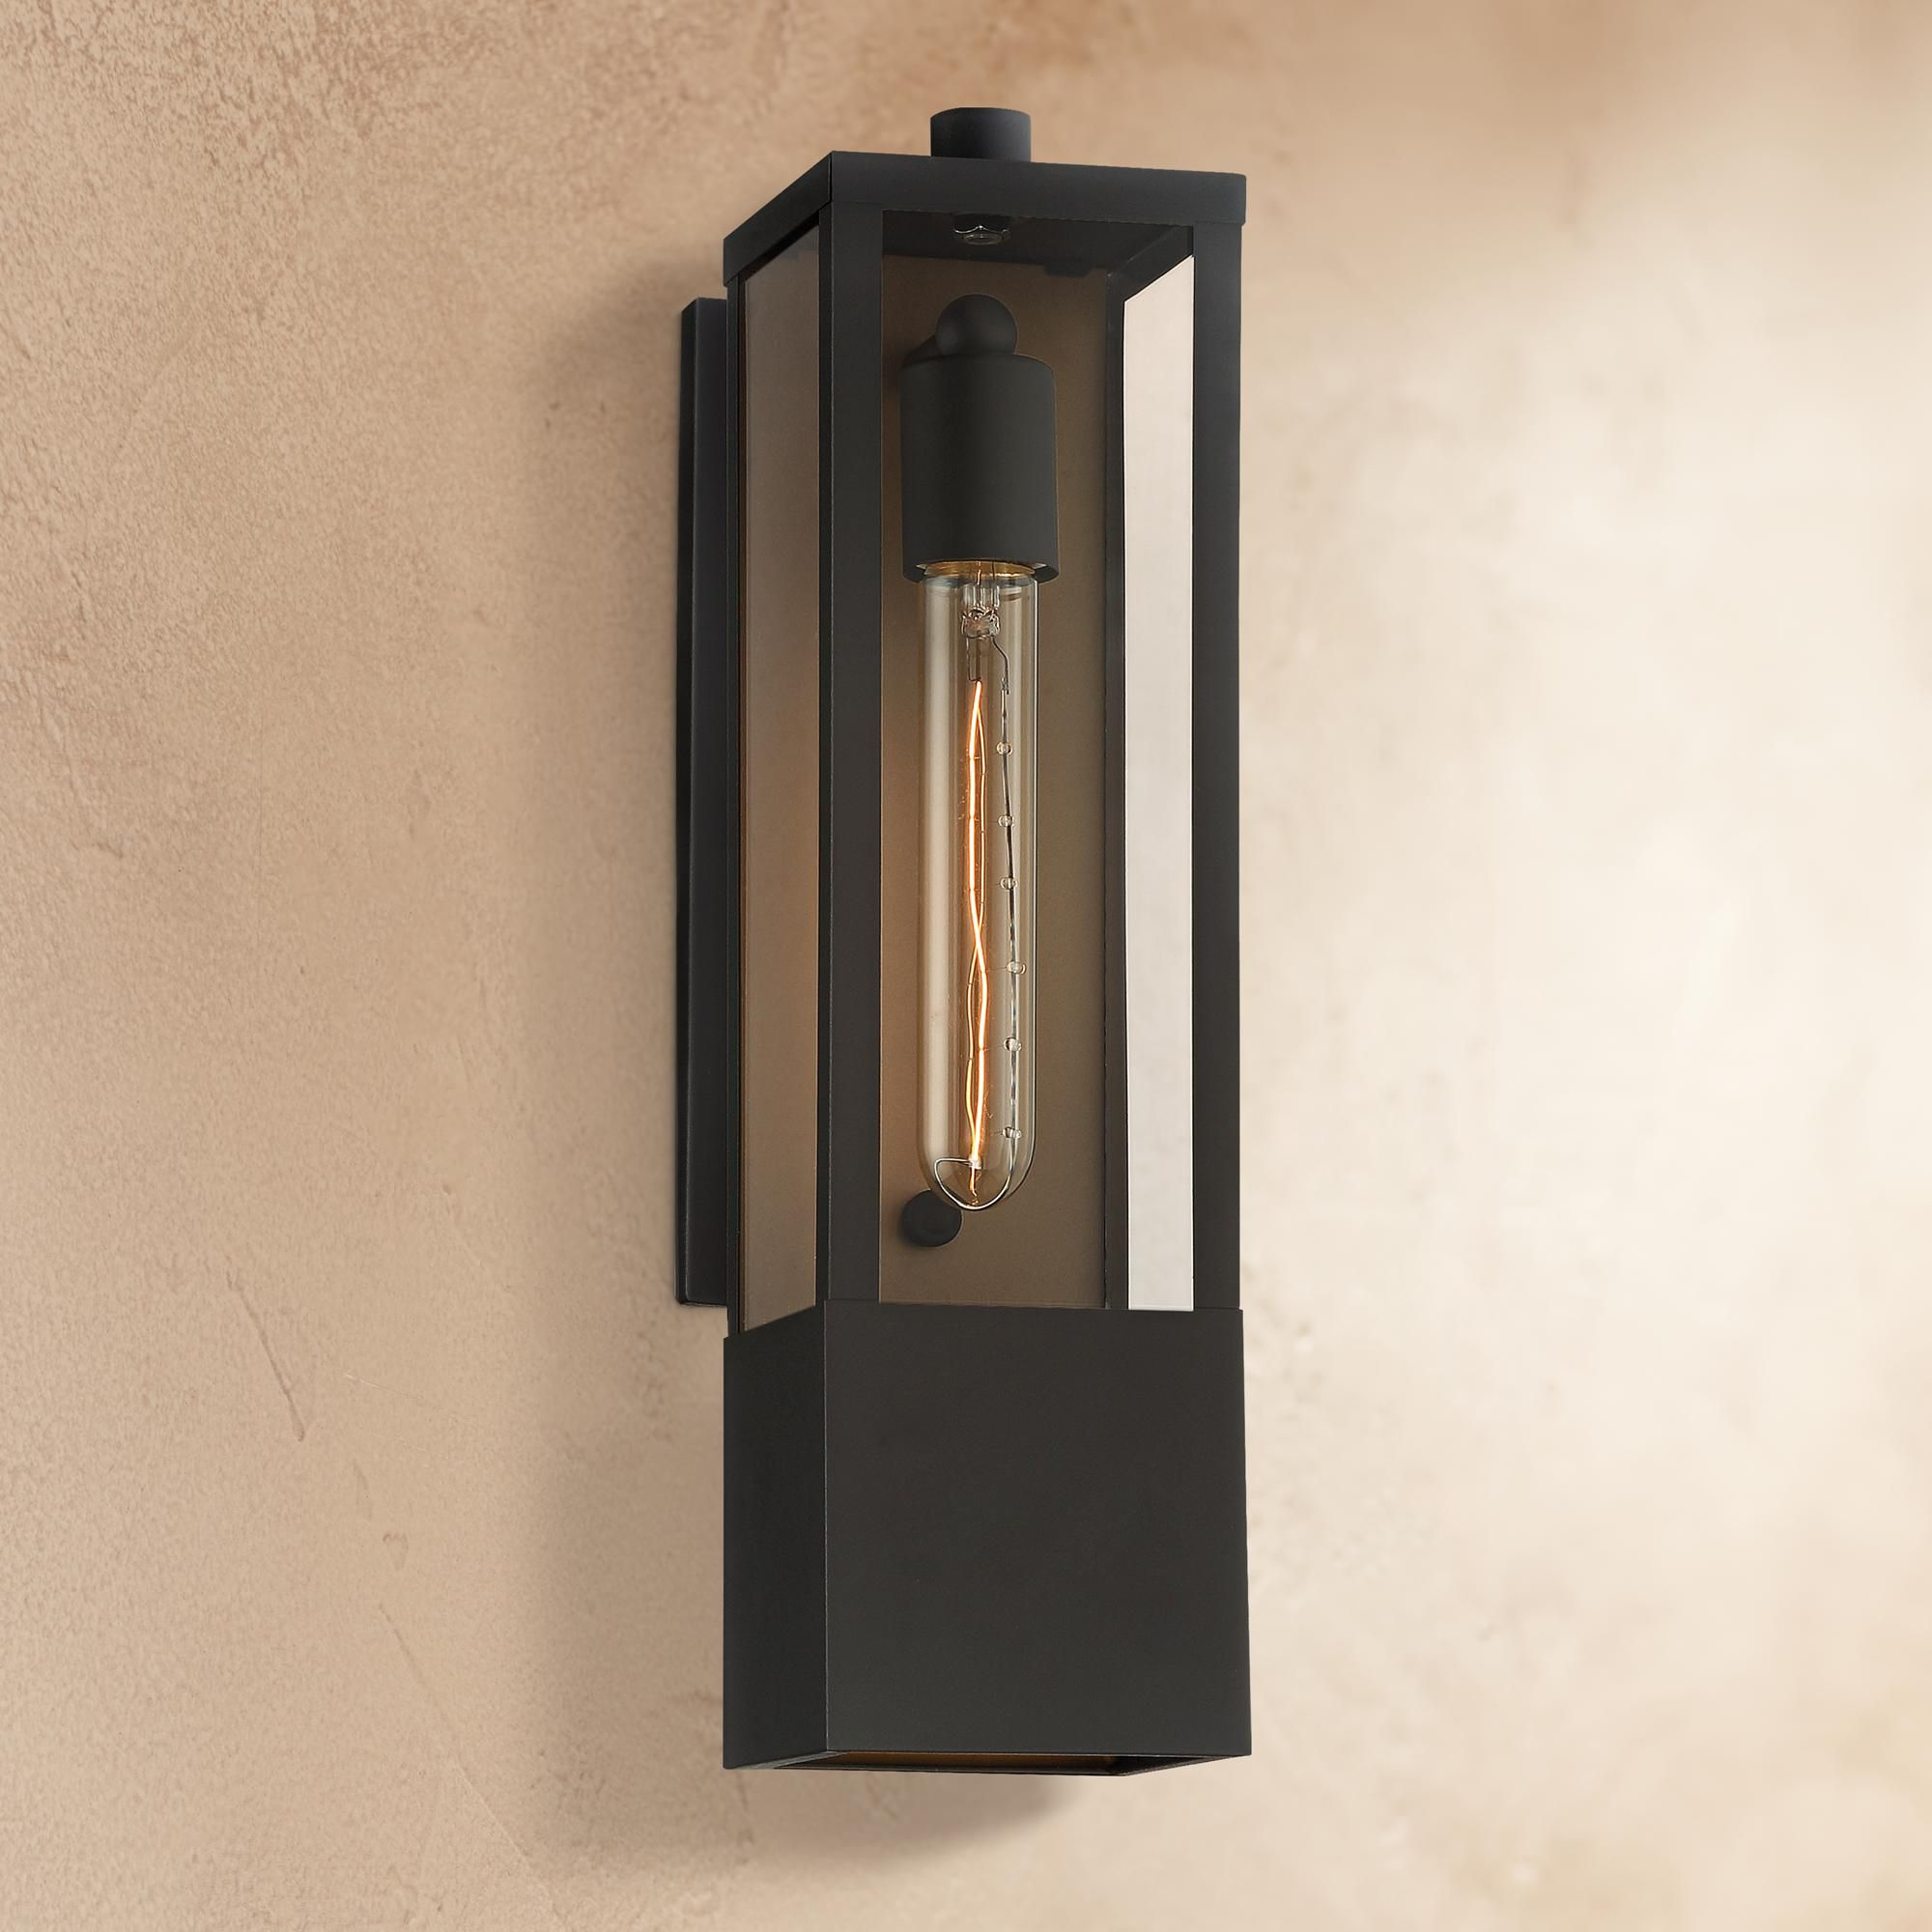 Outdoor Lighting Possini Euro Berk 16 H Black And Gold Box Outdoor Wall Light In 2020 Wall Lights Outdoor Wall Lighting Outdoor Walls